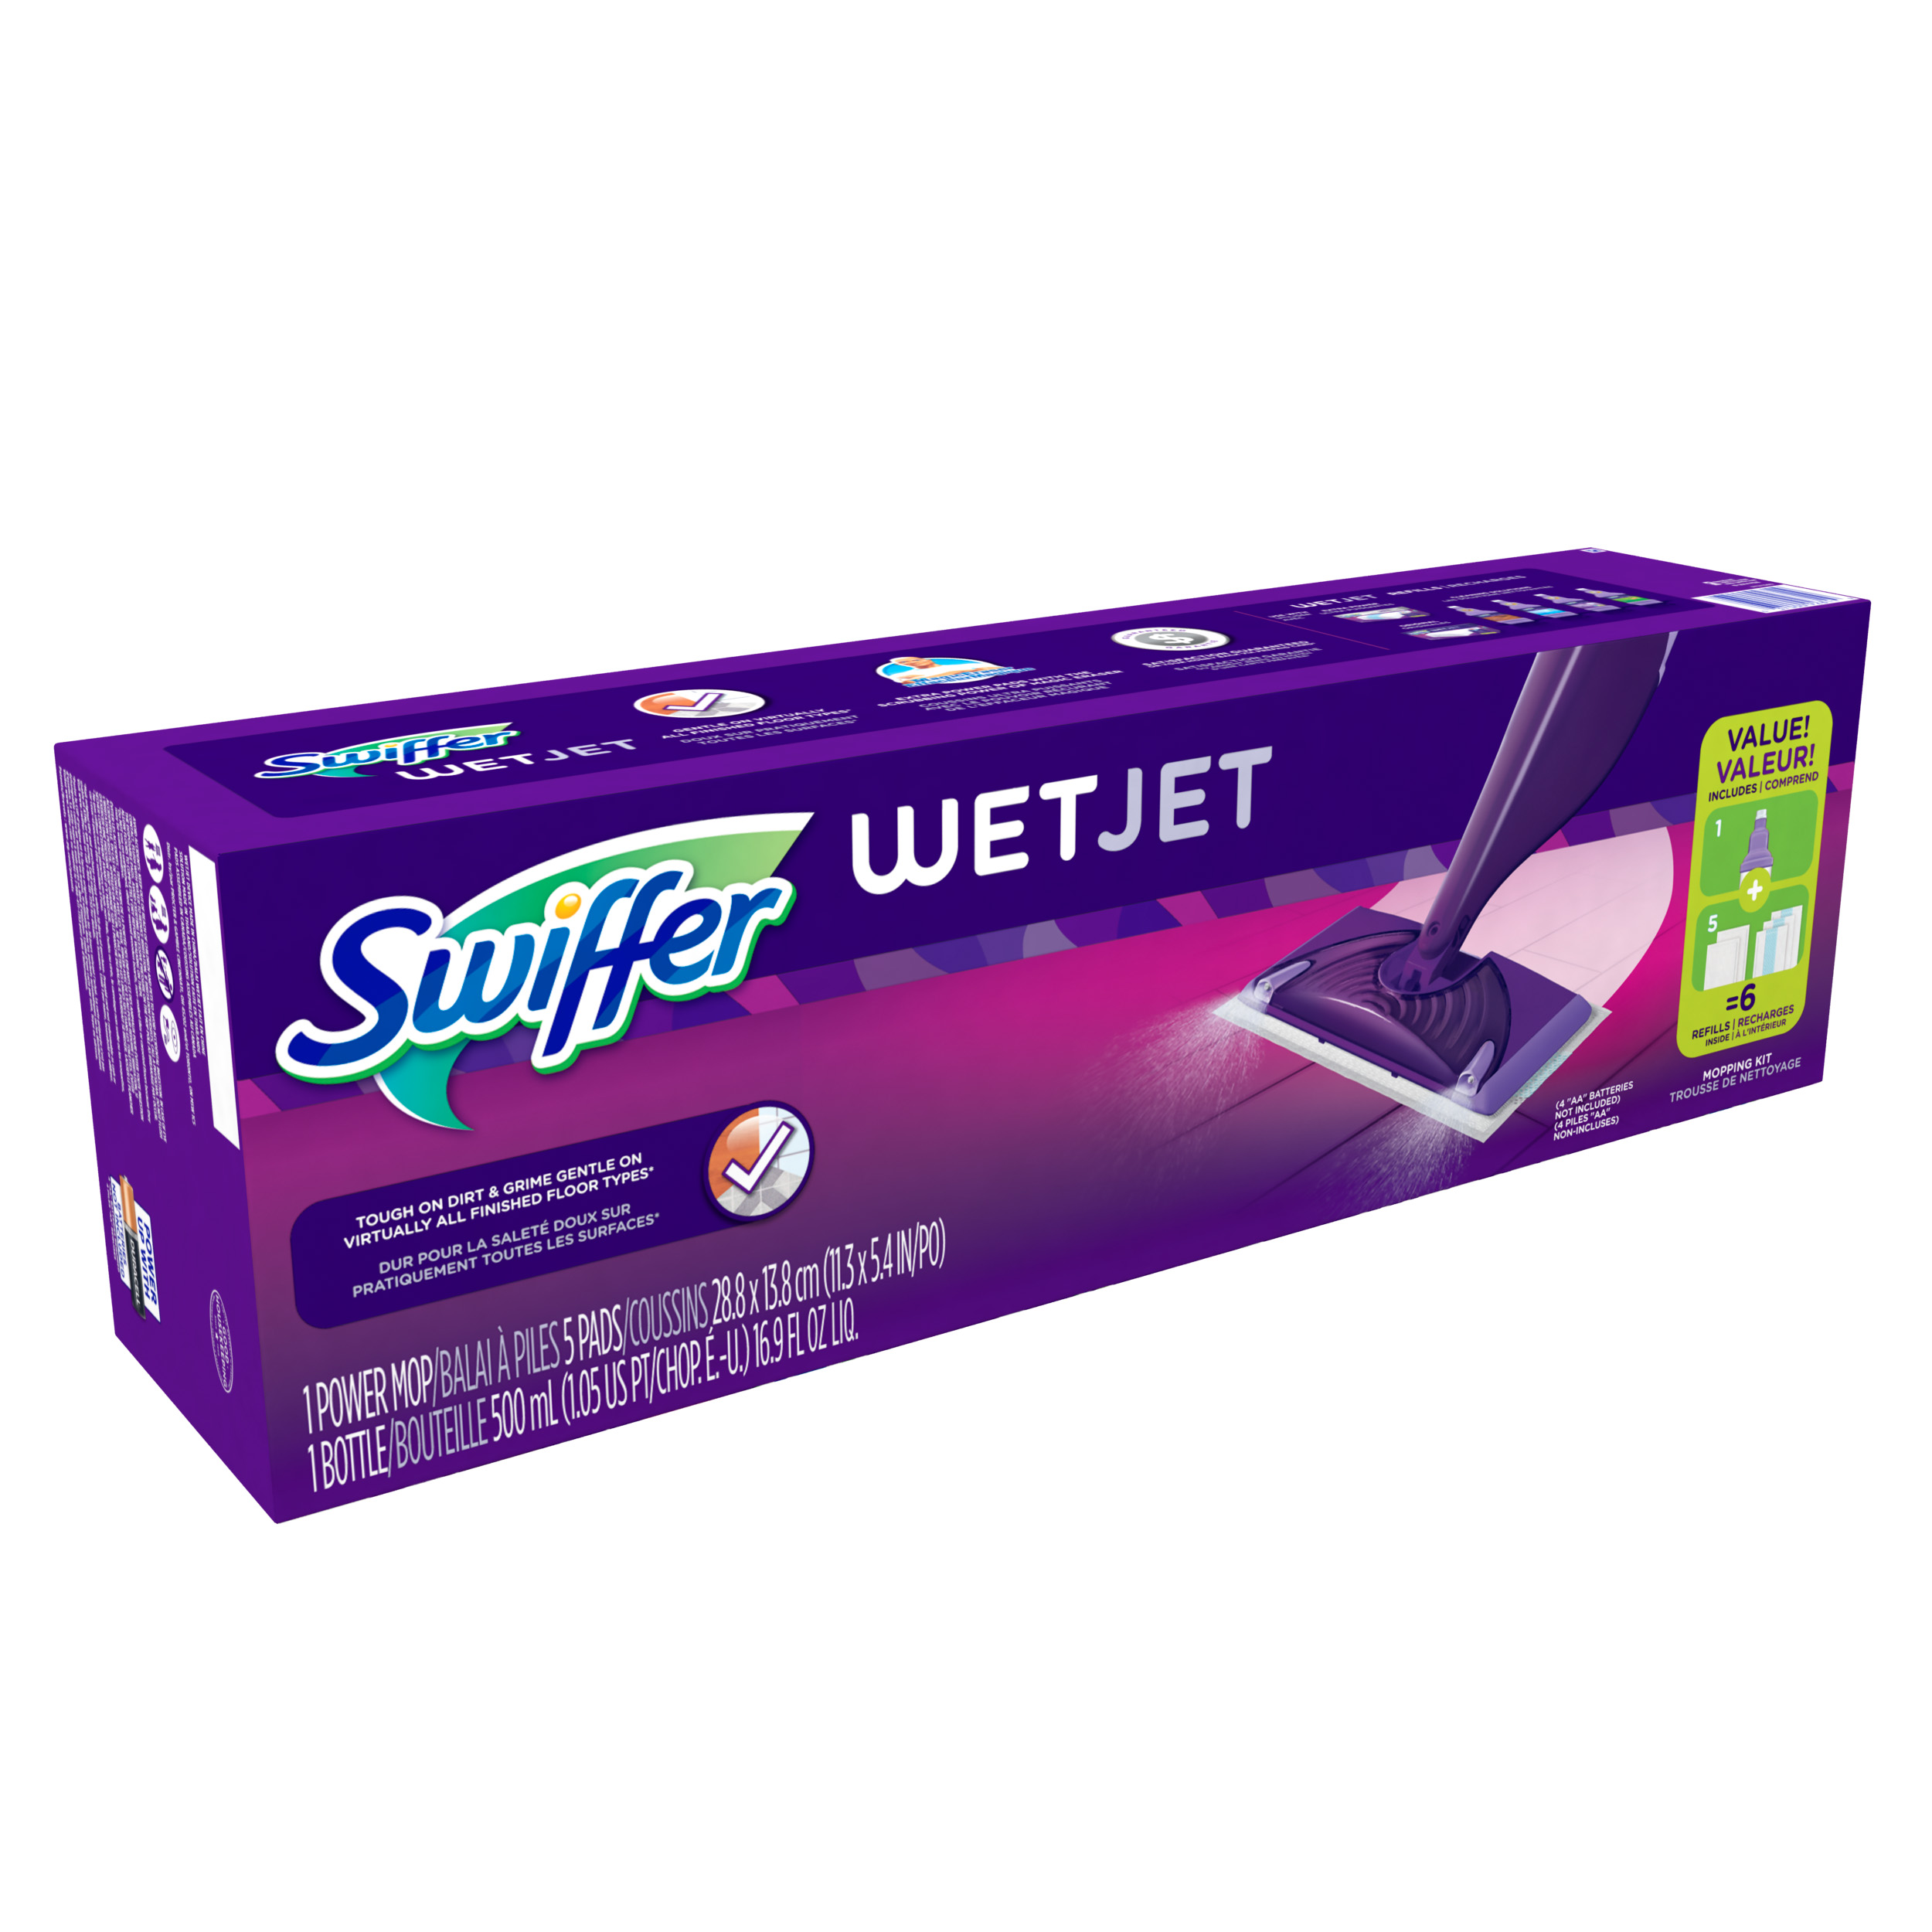 swiffer wetjet hardwood and floor spray mop cleaner starter kit rh walmart com 3-Way Switch Wiring Diagram wetjet duo 300 wiring diagram